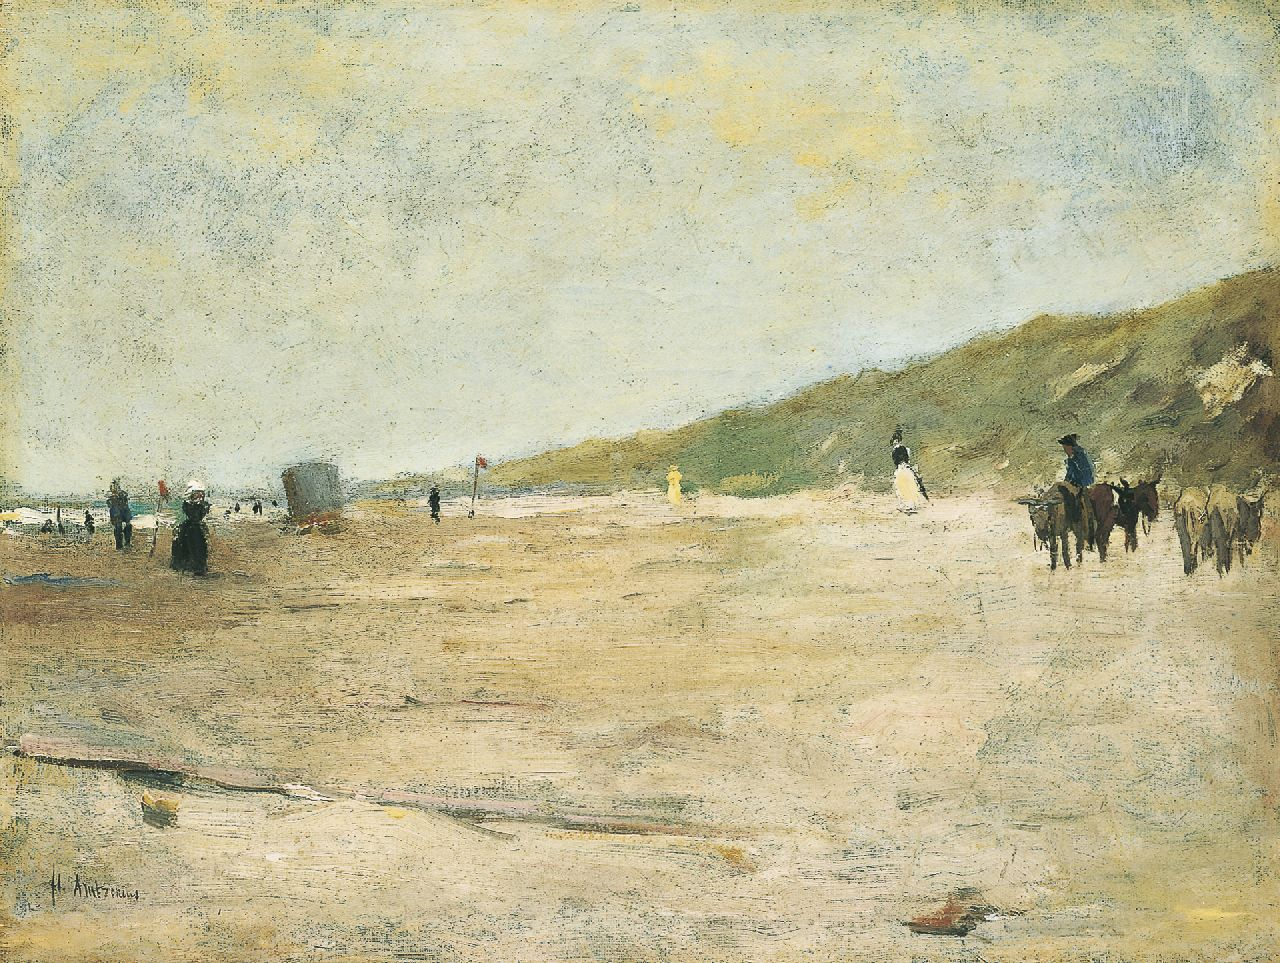 Arntzenius P.F.N.J.  | Pieter Florentius Nicolaas Jacobus 'Floris' Arntzenius, Beach scene with donkies, oil on canvas 31.5 x 41.3 cm, signed l.l.